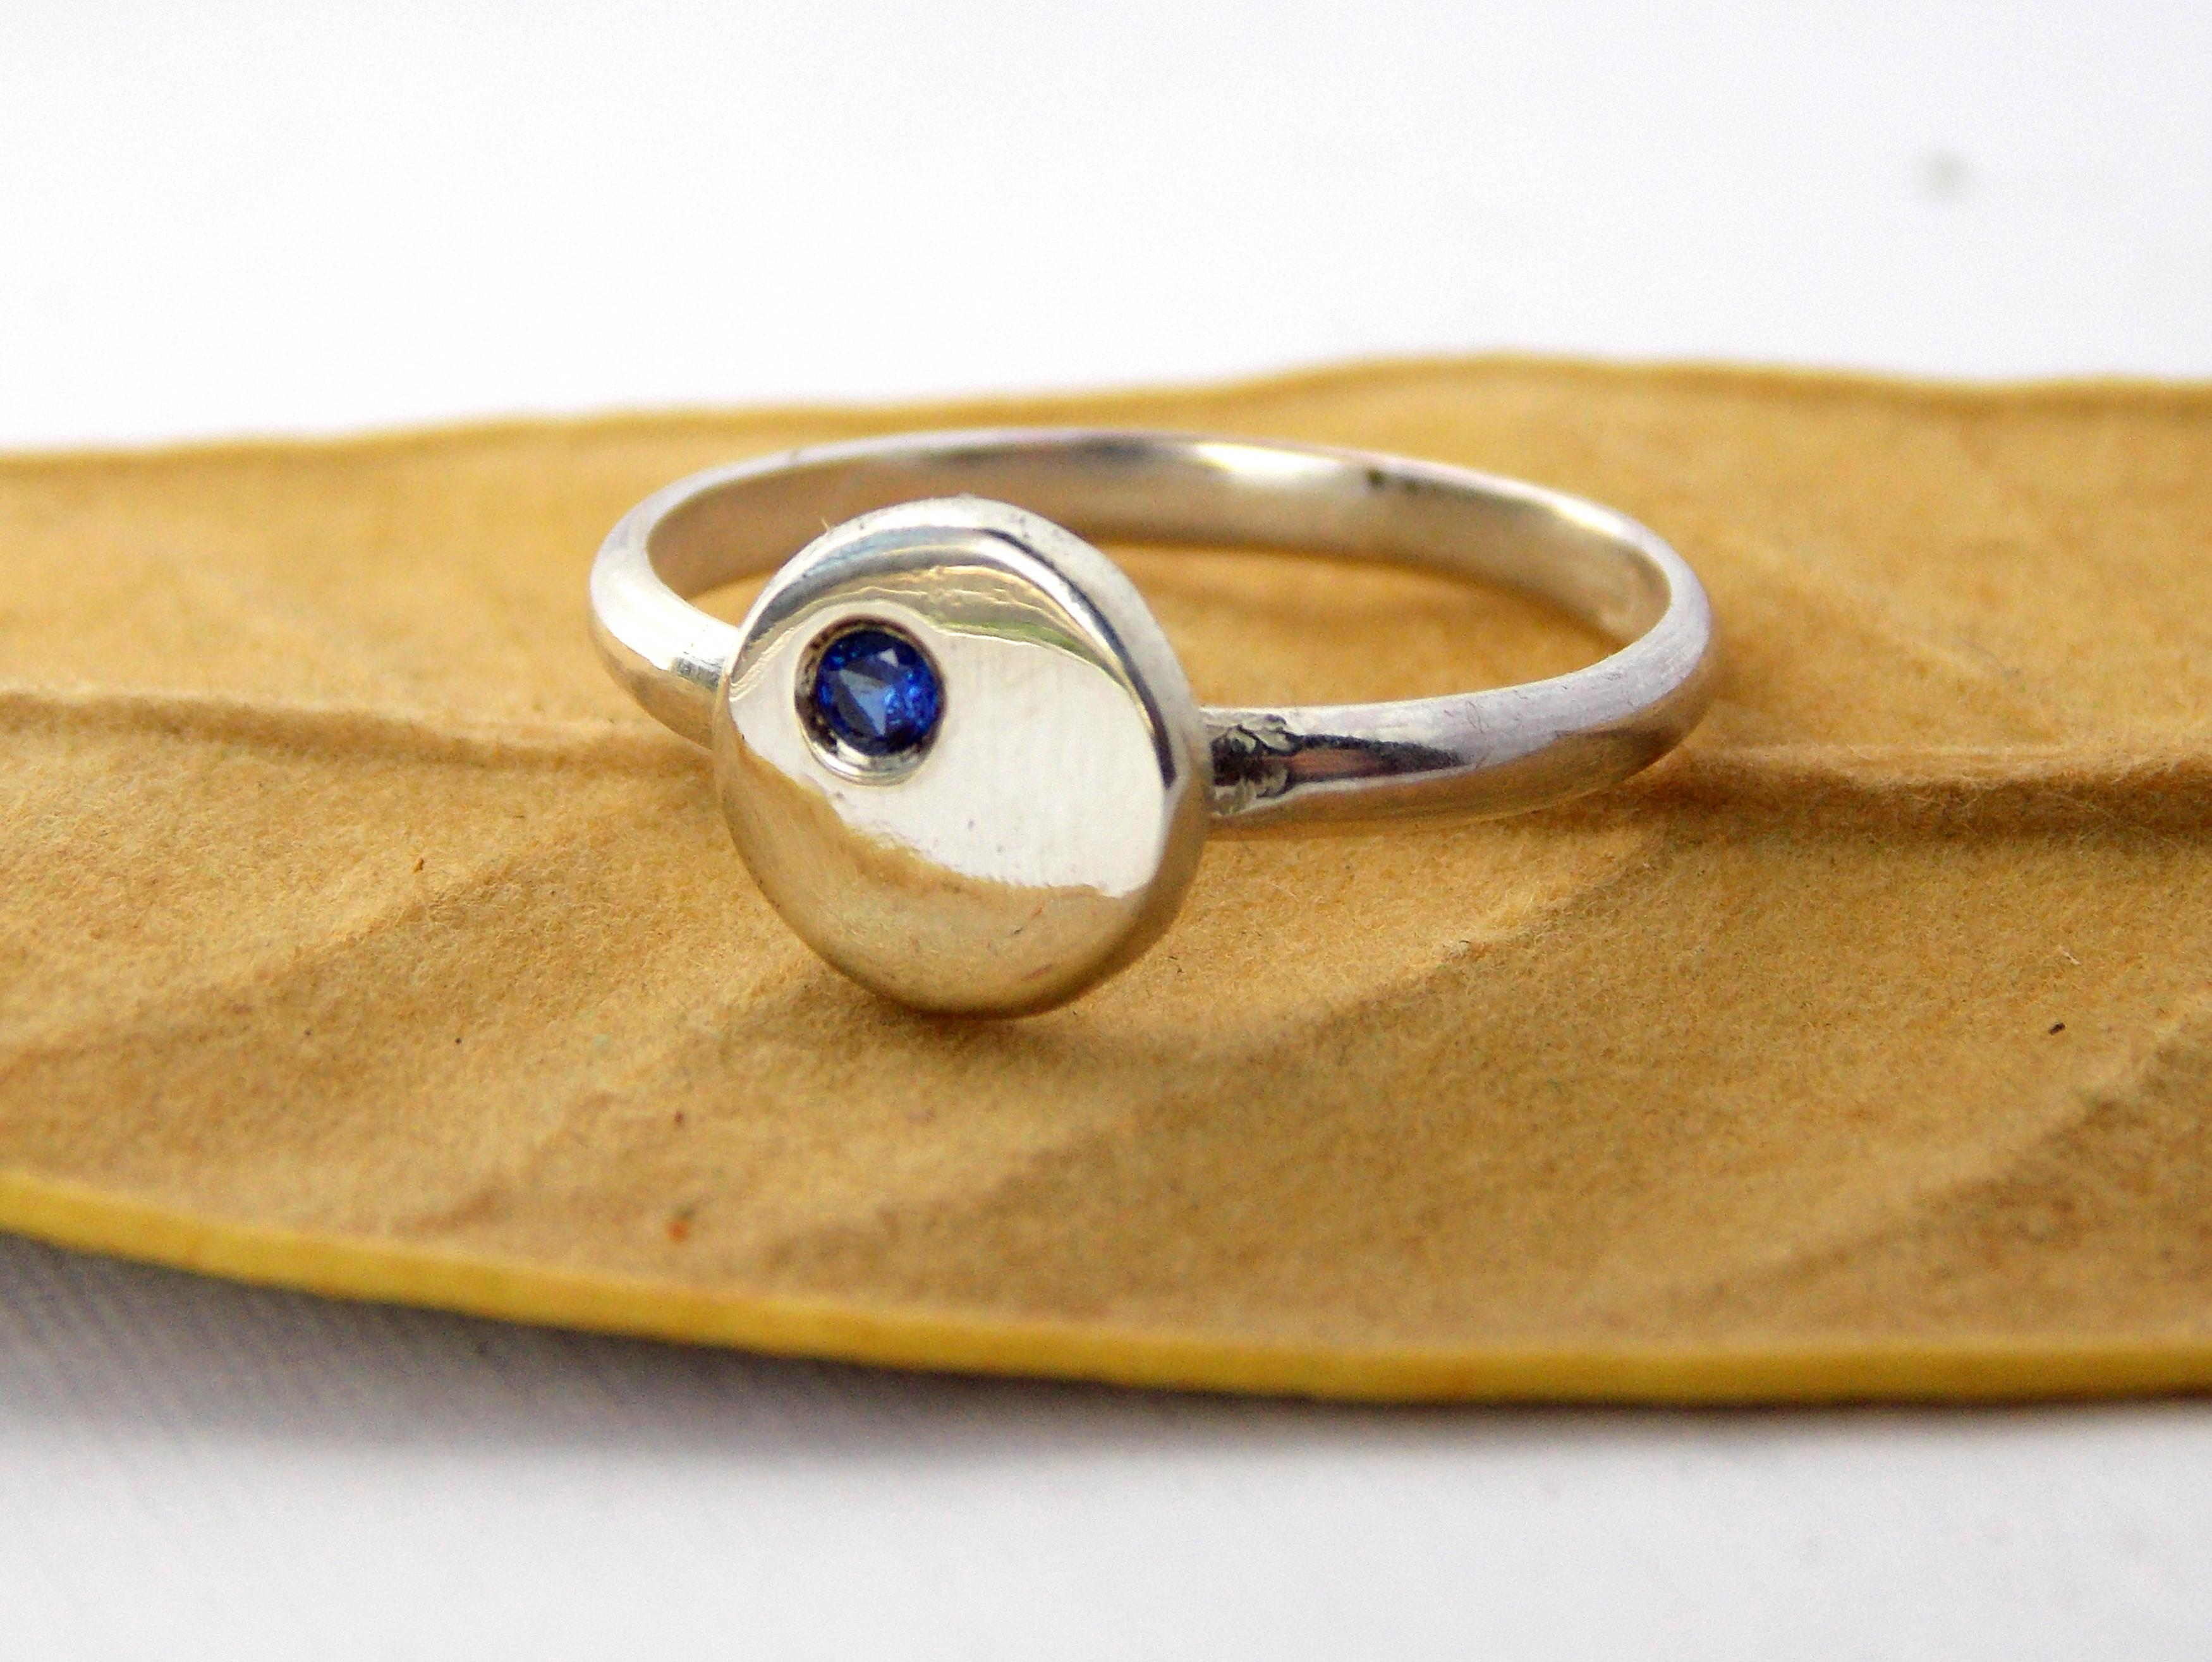 bracelet beautiful cheerful jewellery gold and for birthstone nile awesome white birthstones sterling bangle ring monarch silver with infinity blue in